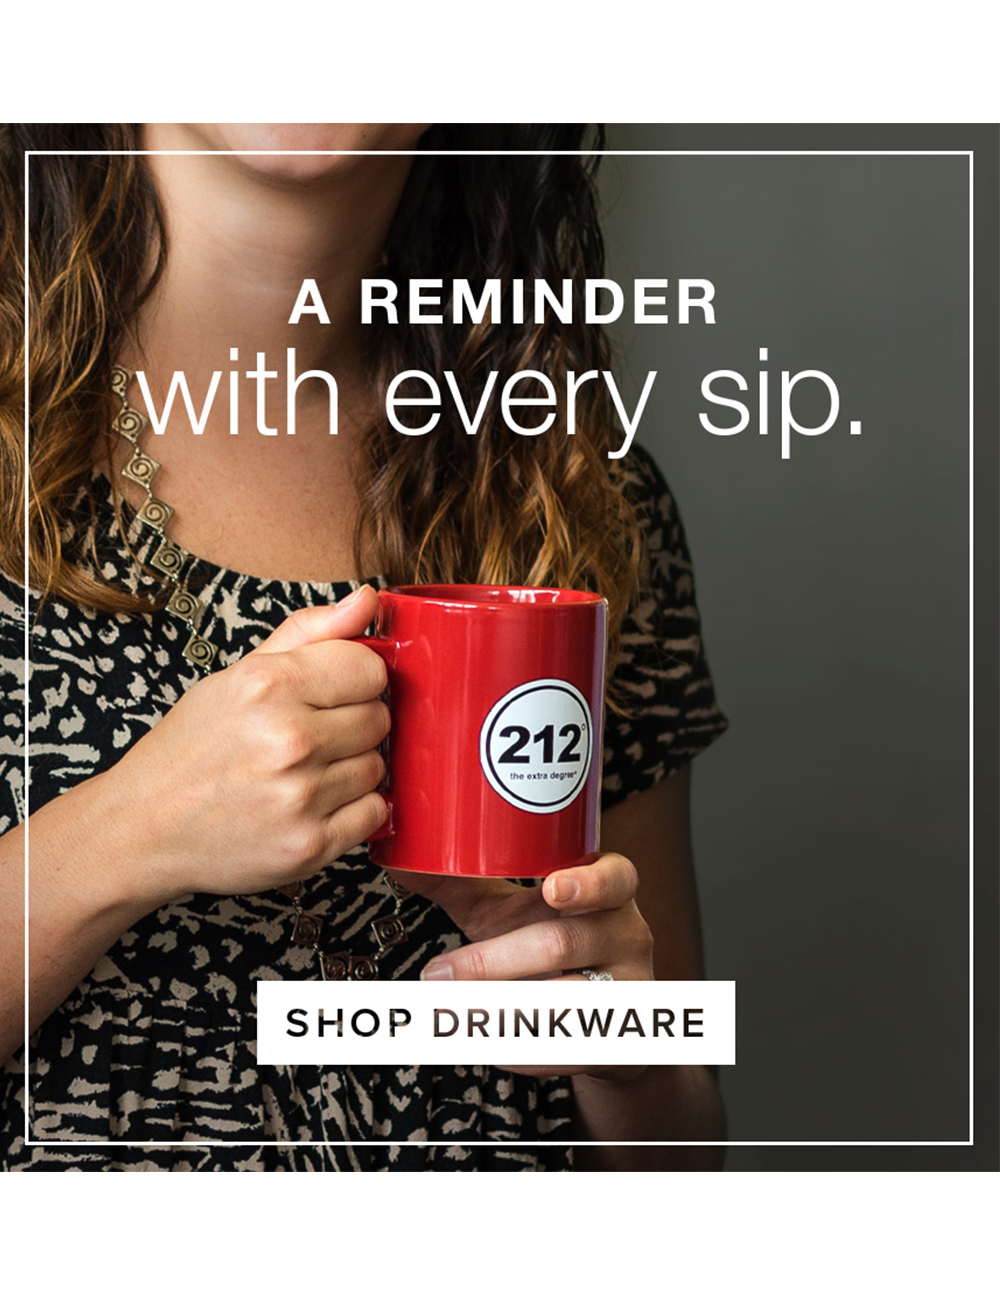 A reminder with every sip